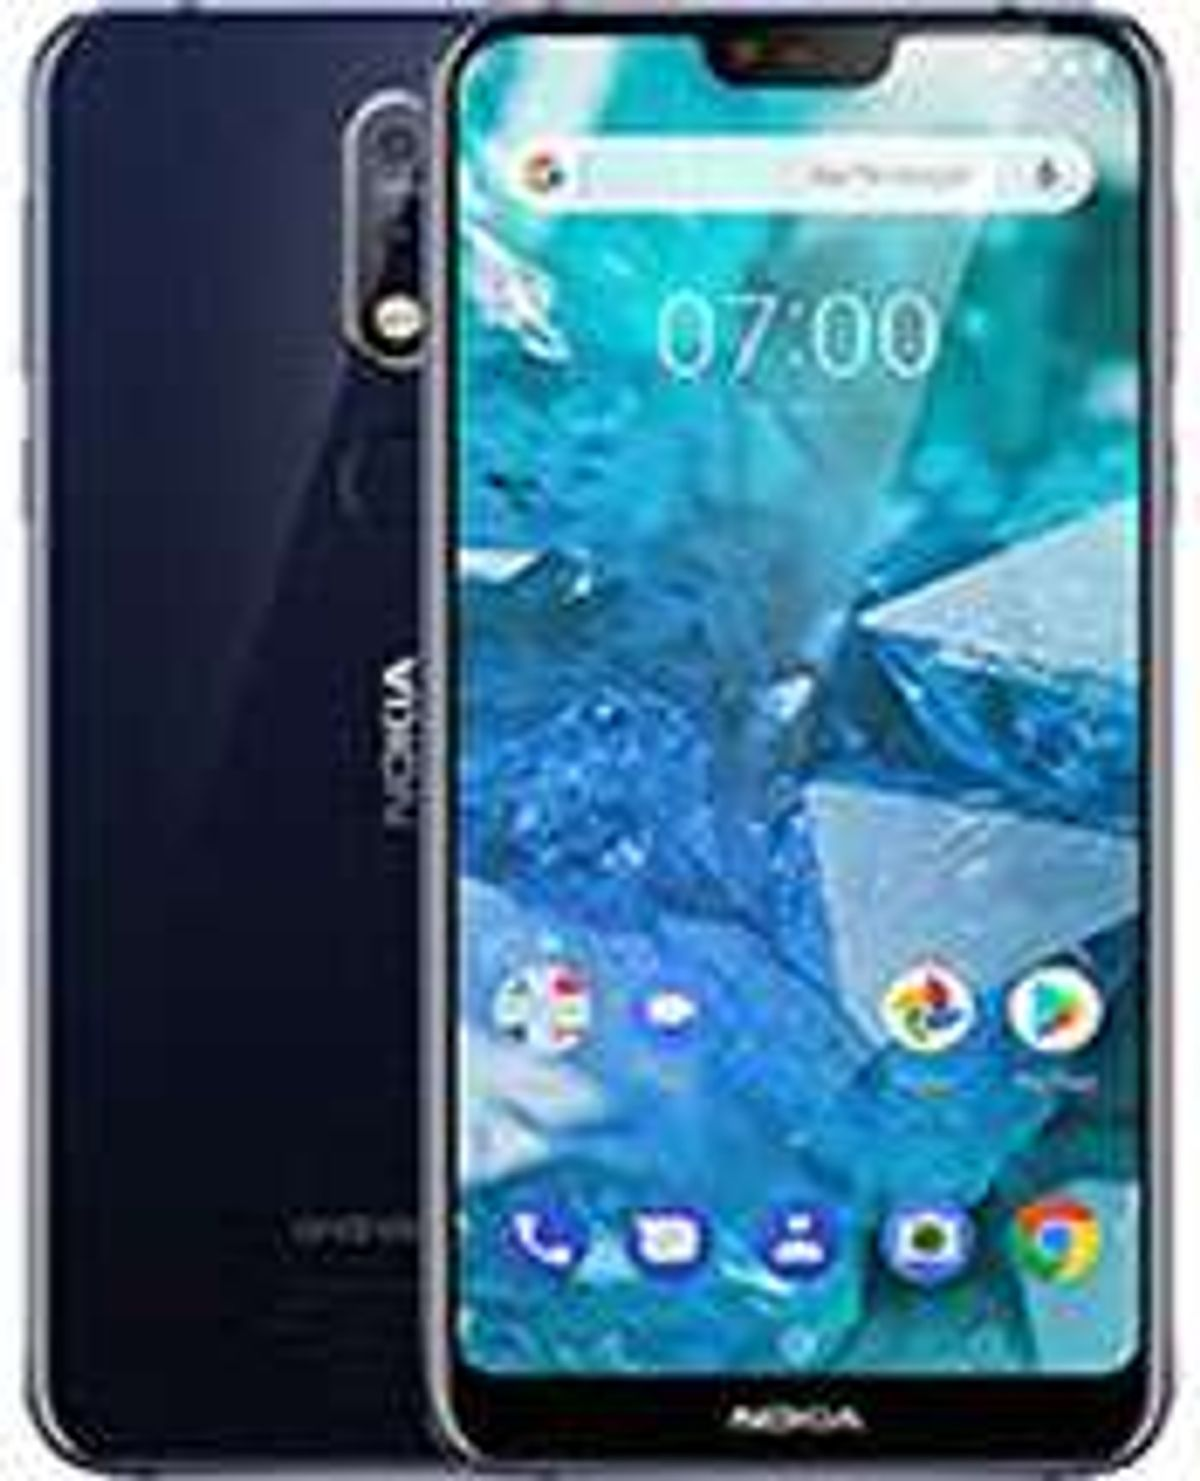 Best Nokia Phones Under 20000 - August 2019 in India | Digit in